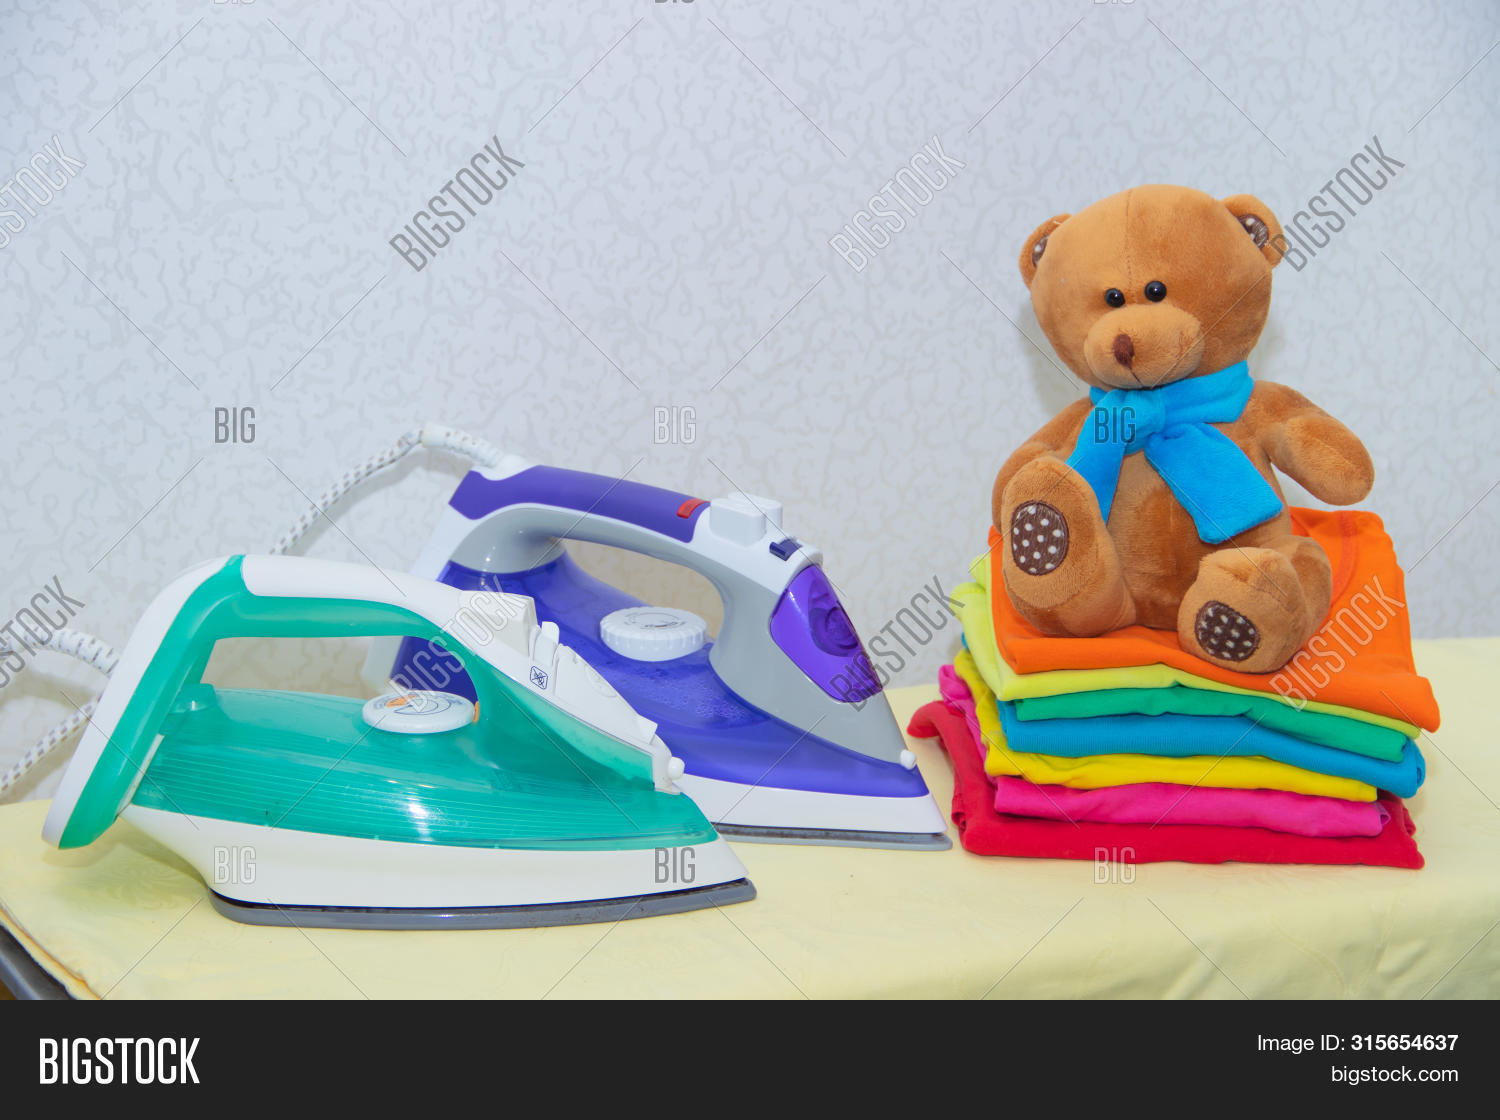 Iron And Baby Clothes. Colored Clothes On An Ironing Board. Bright T-shirts. Ironed Colored Baby Und